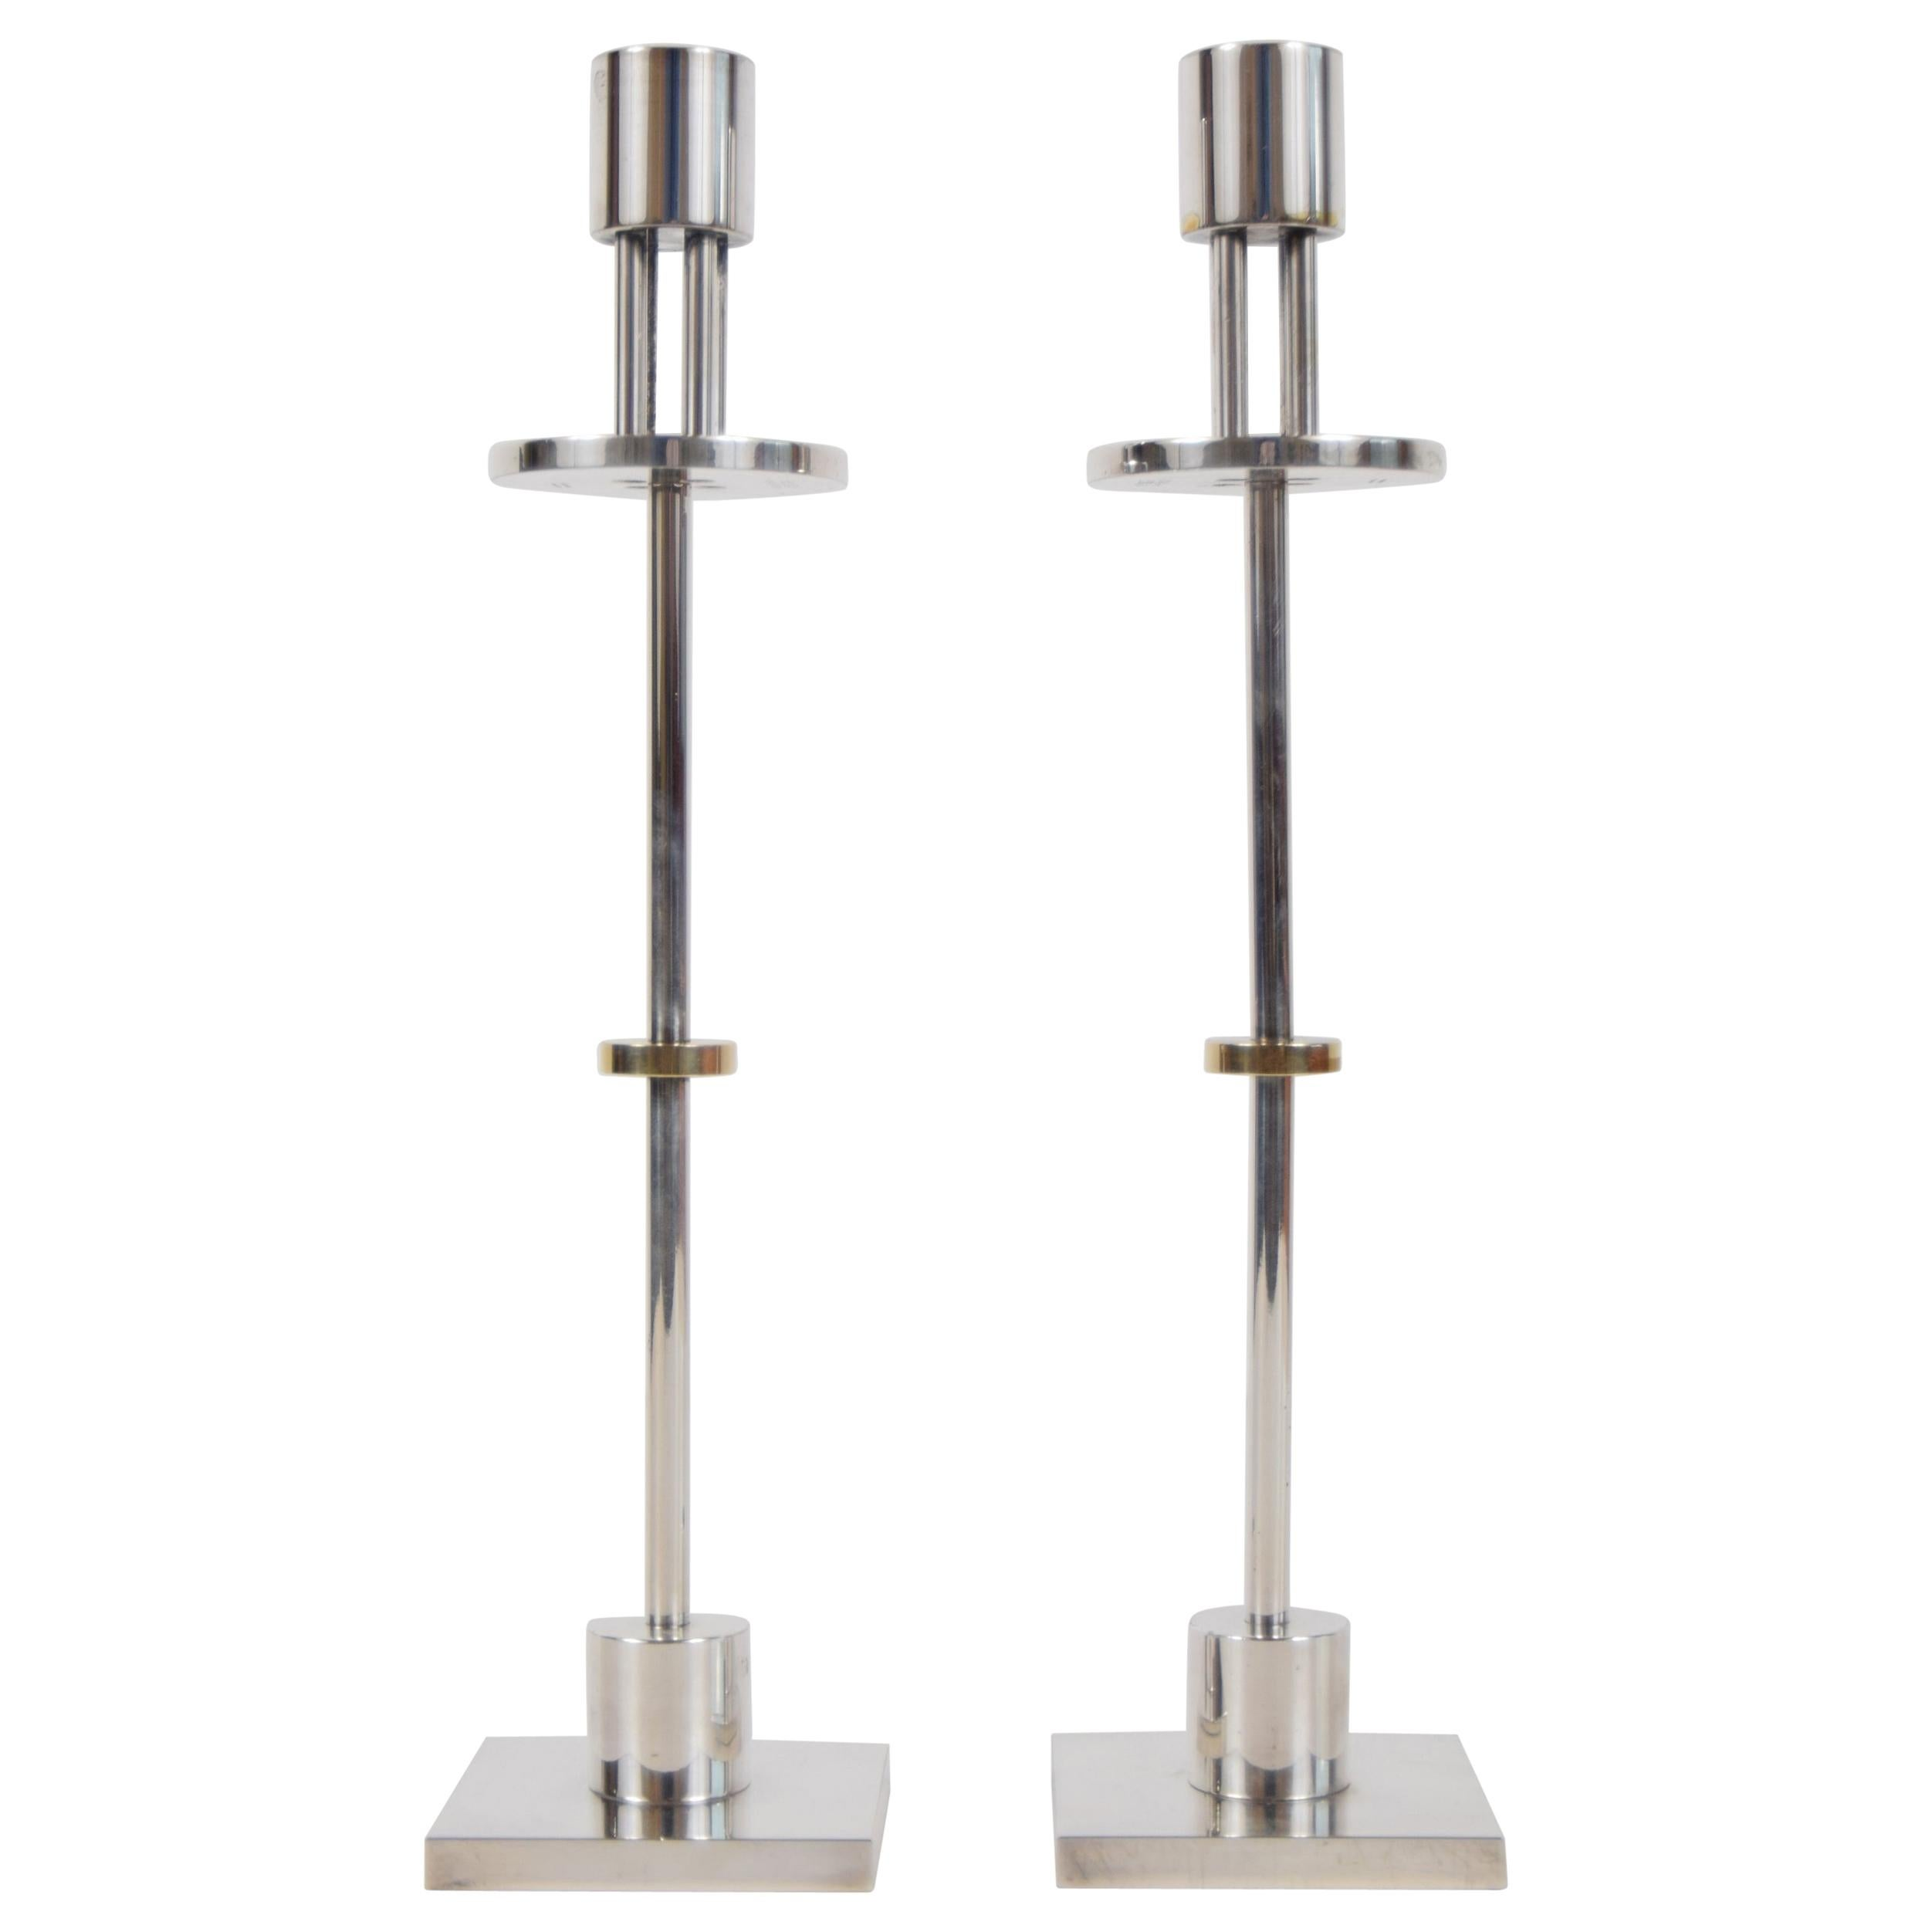 Pair of Candlesticks Designed by Ettore Sottsass